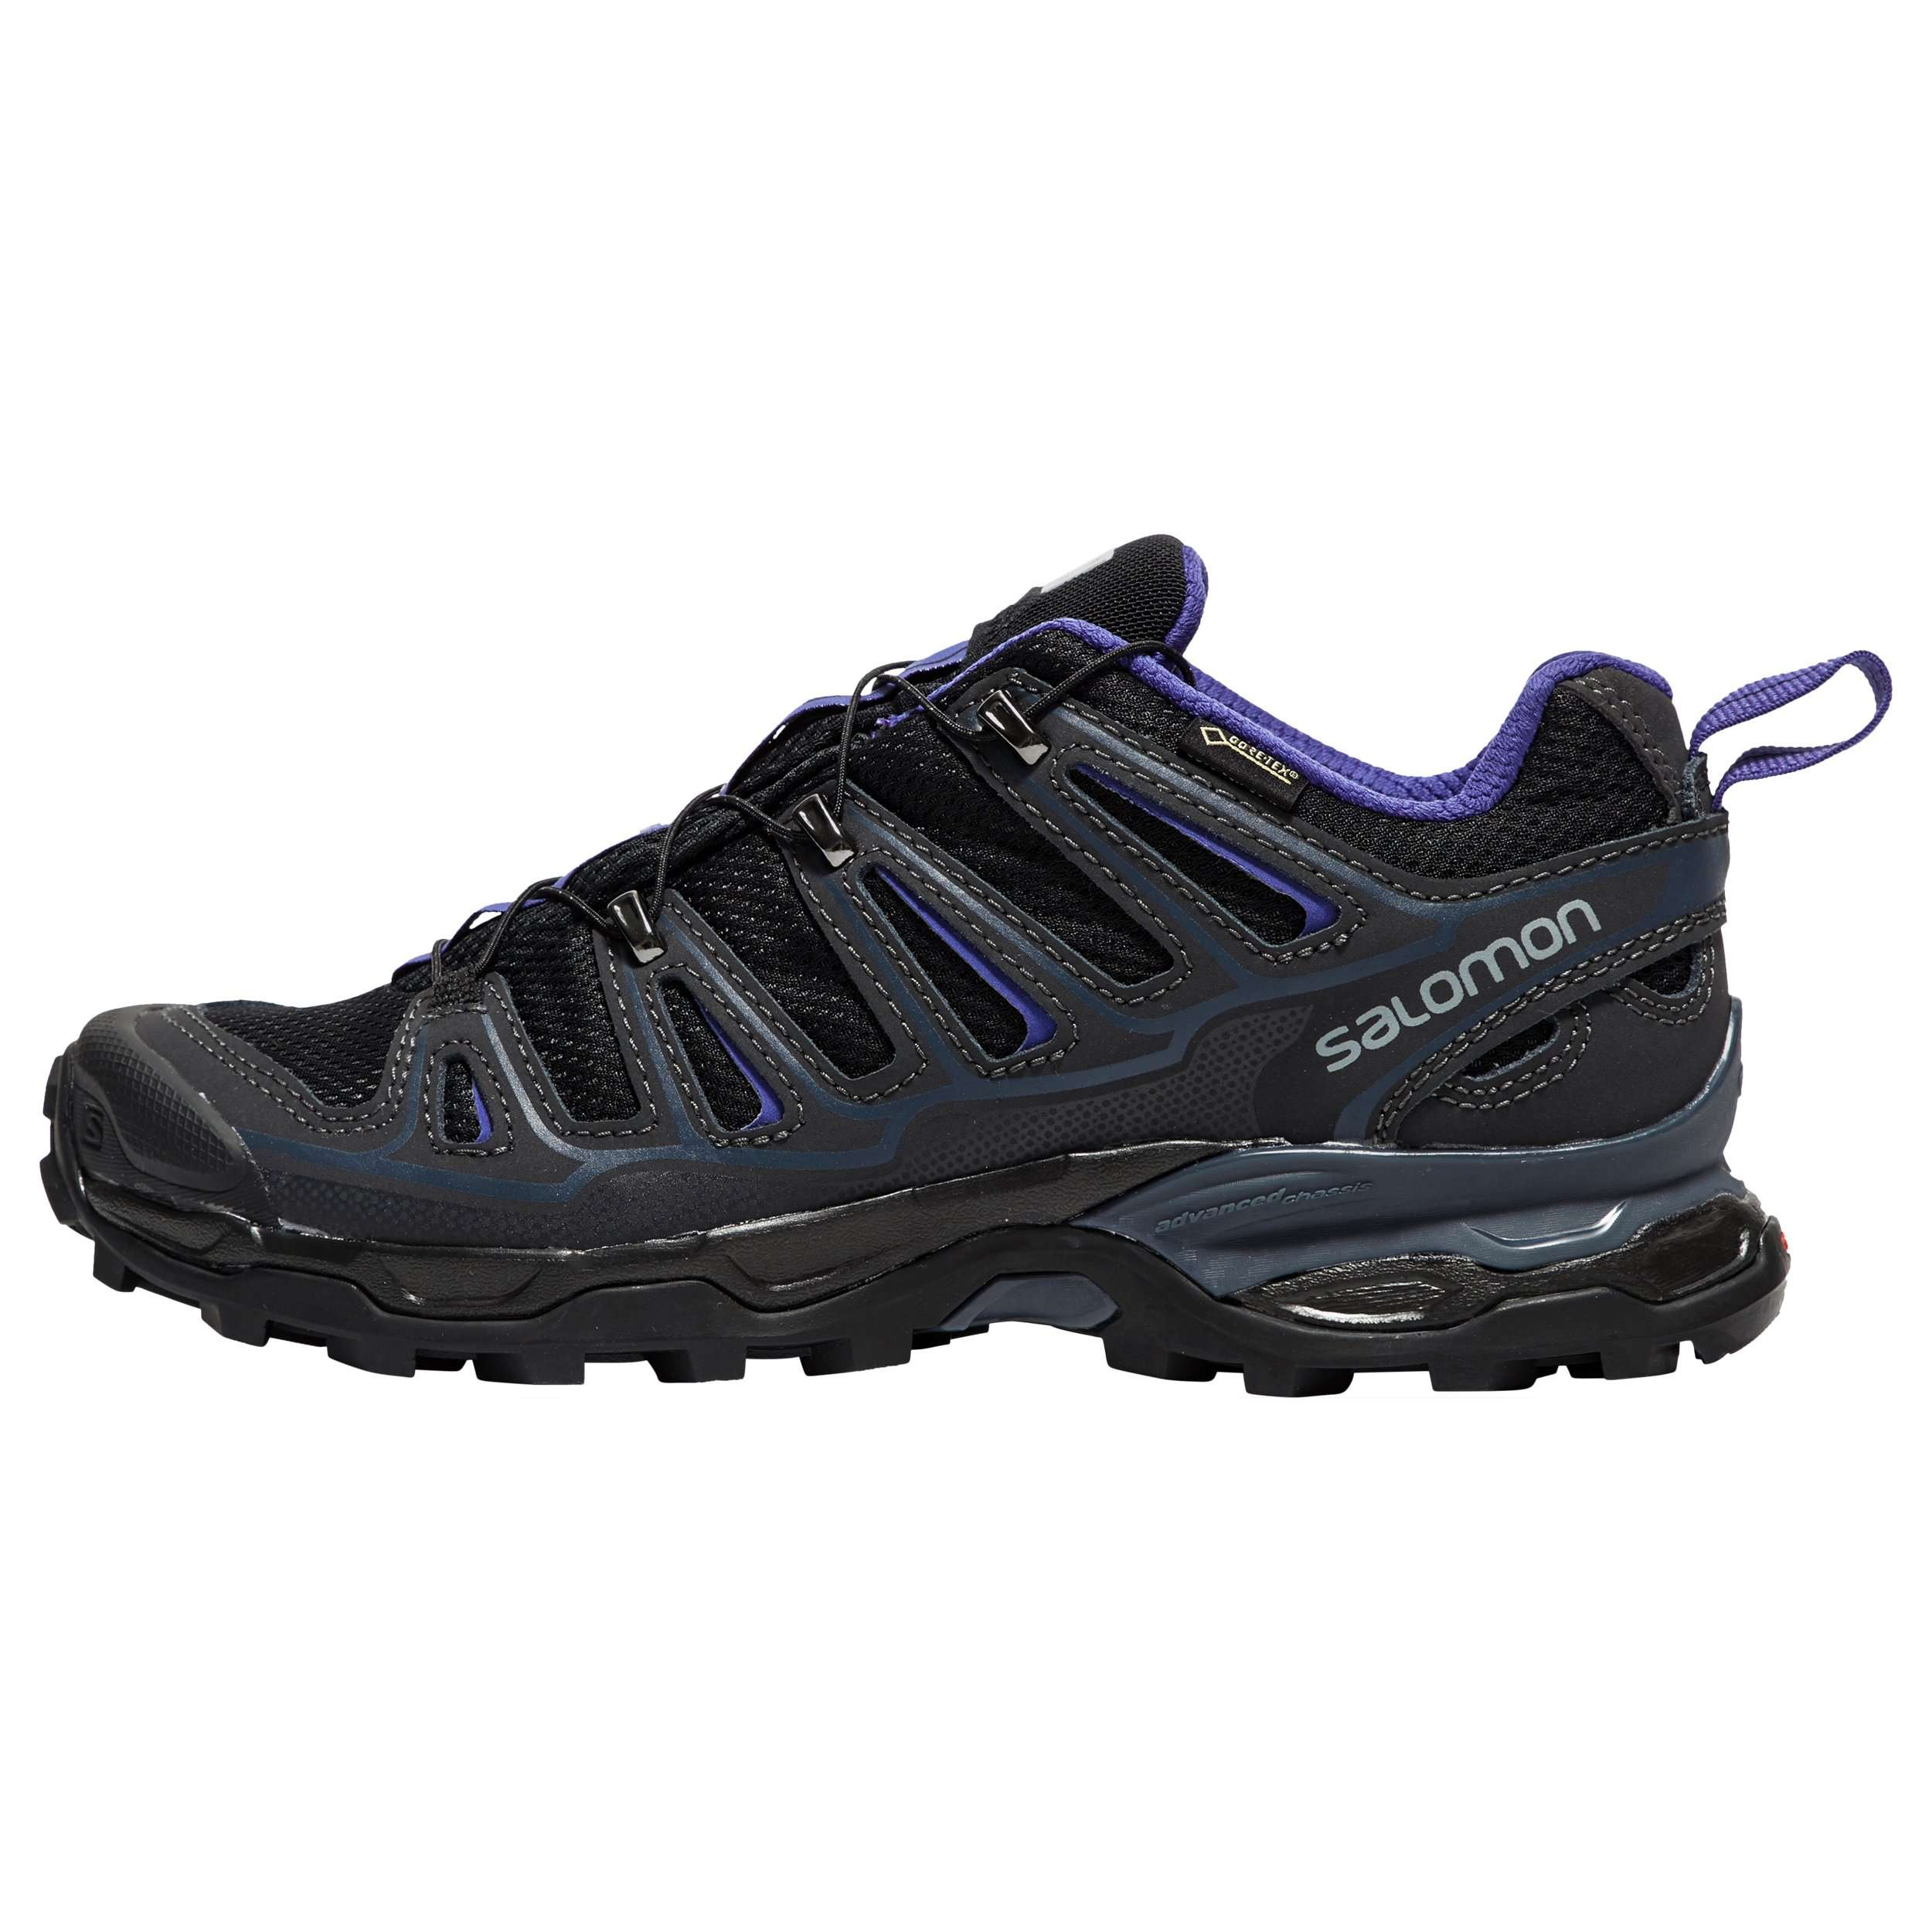 Salomon X Ultra 2 GTX Women's Walking Shoes